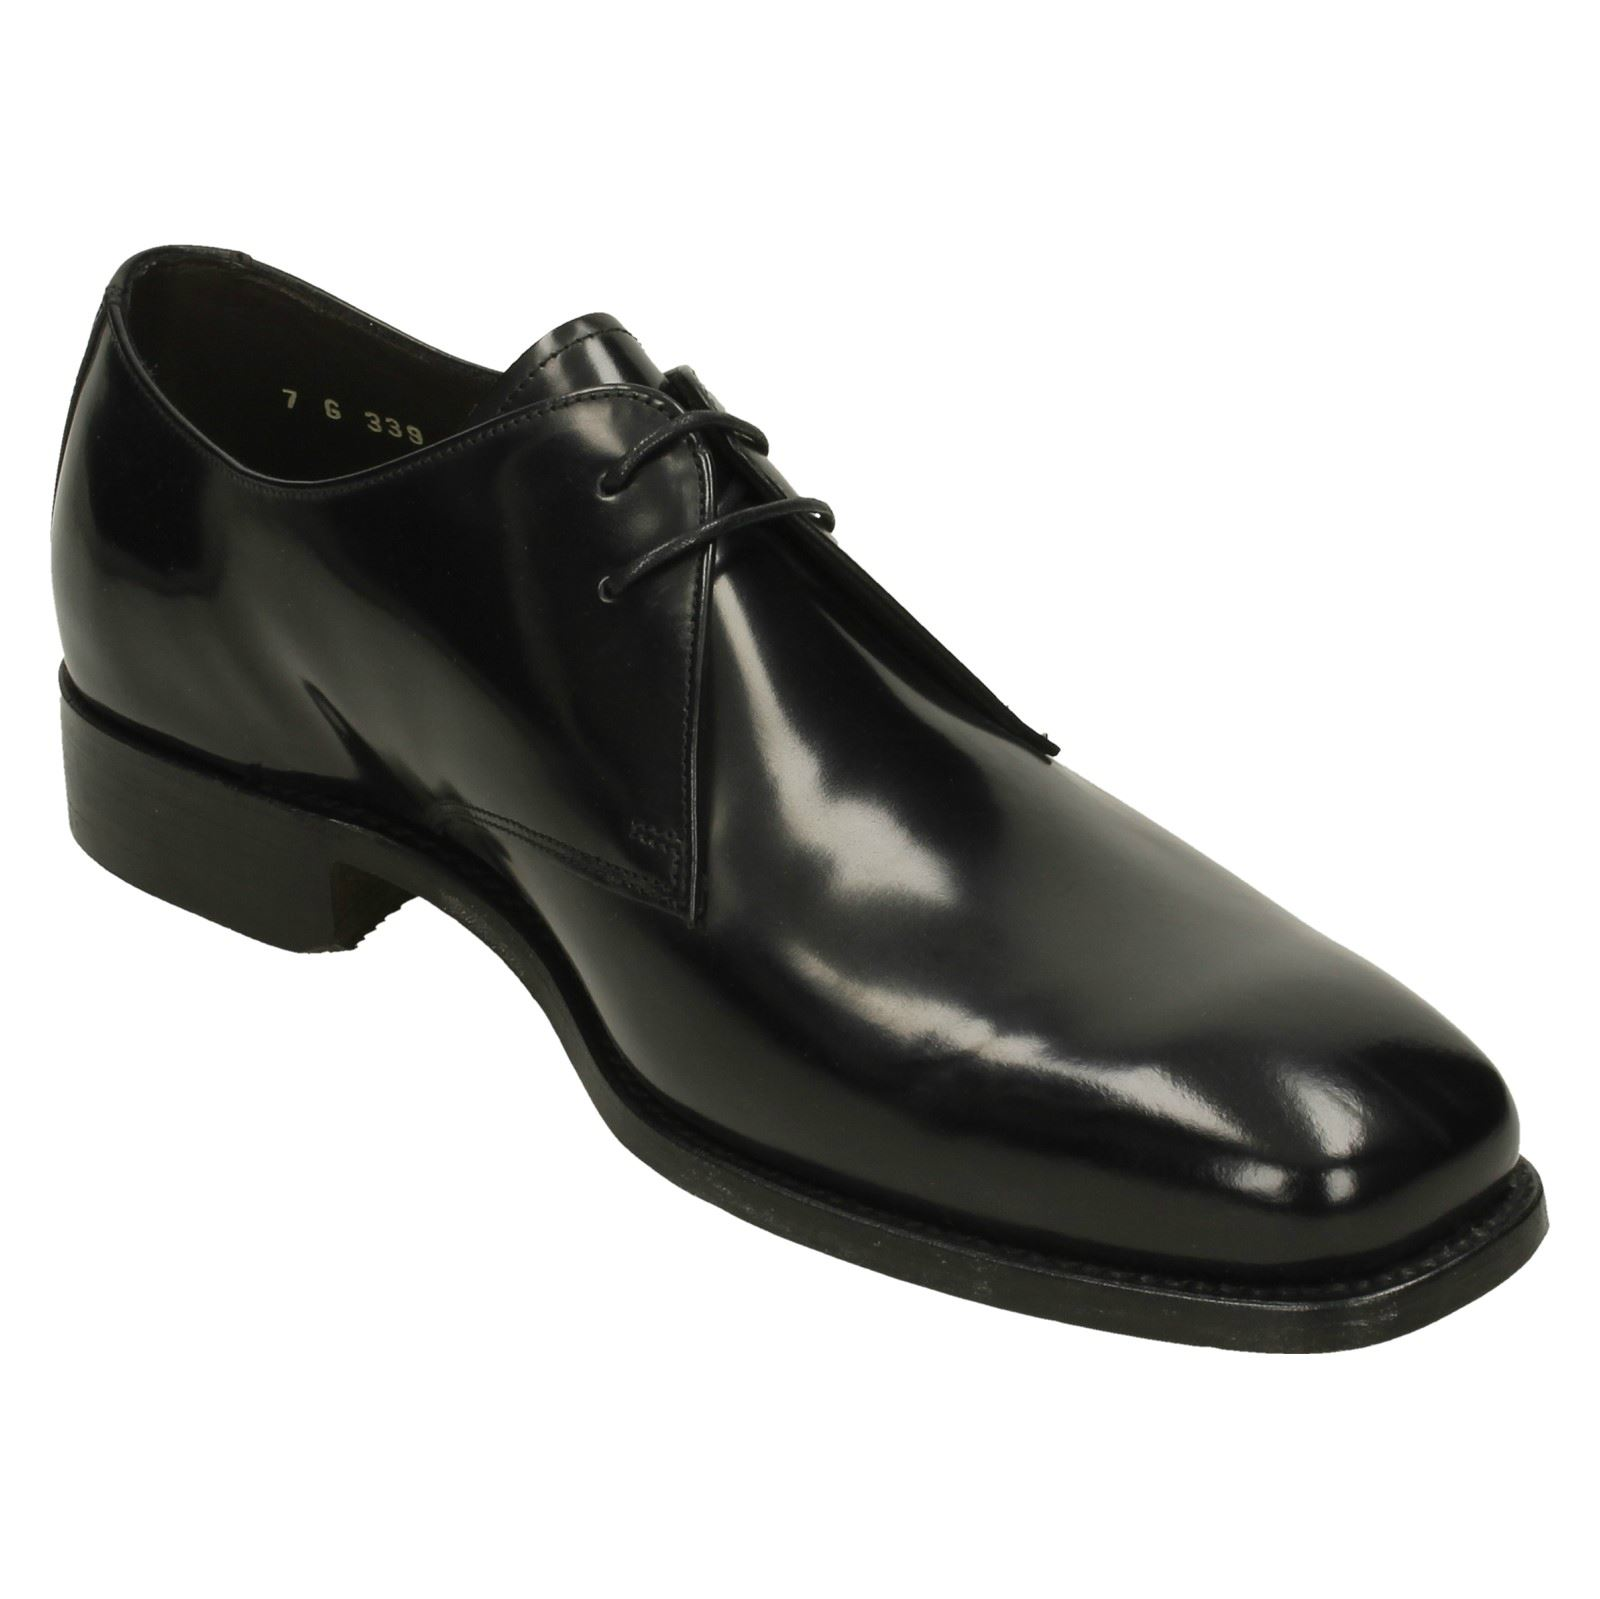 Herren Barker Formal Schuhes Schuhes Formal Dwight 1a9188